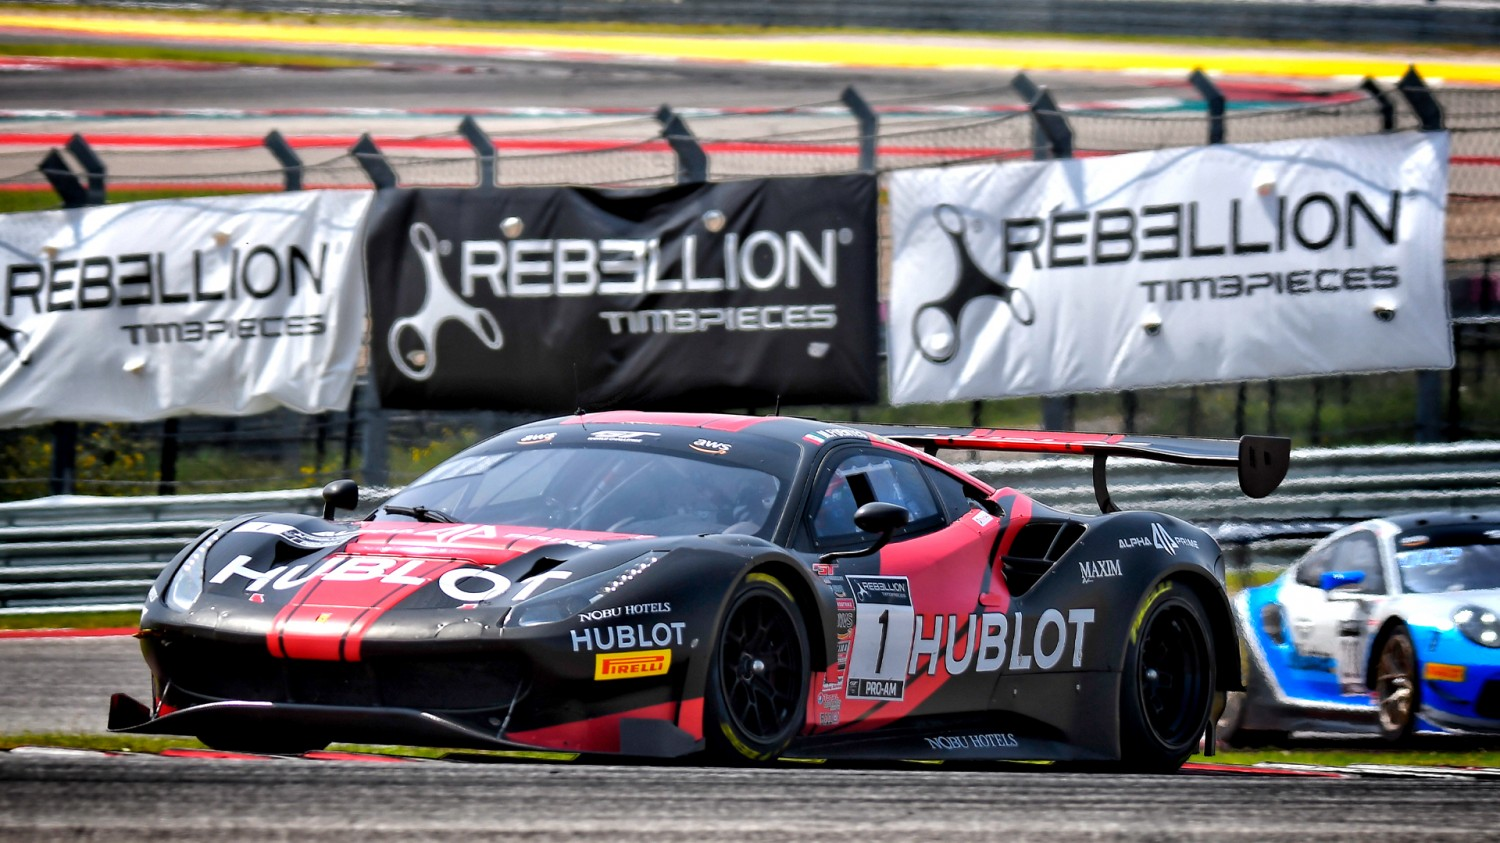 Fuentes/Baptista, Blackstock/Hindman Repeat the Feat, Sweep GT World Challenge America Weekend at COTA